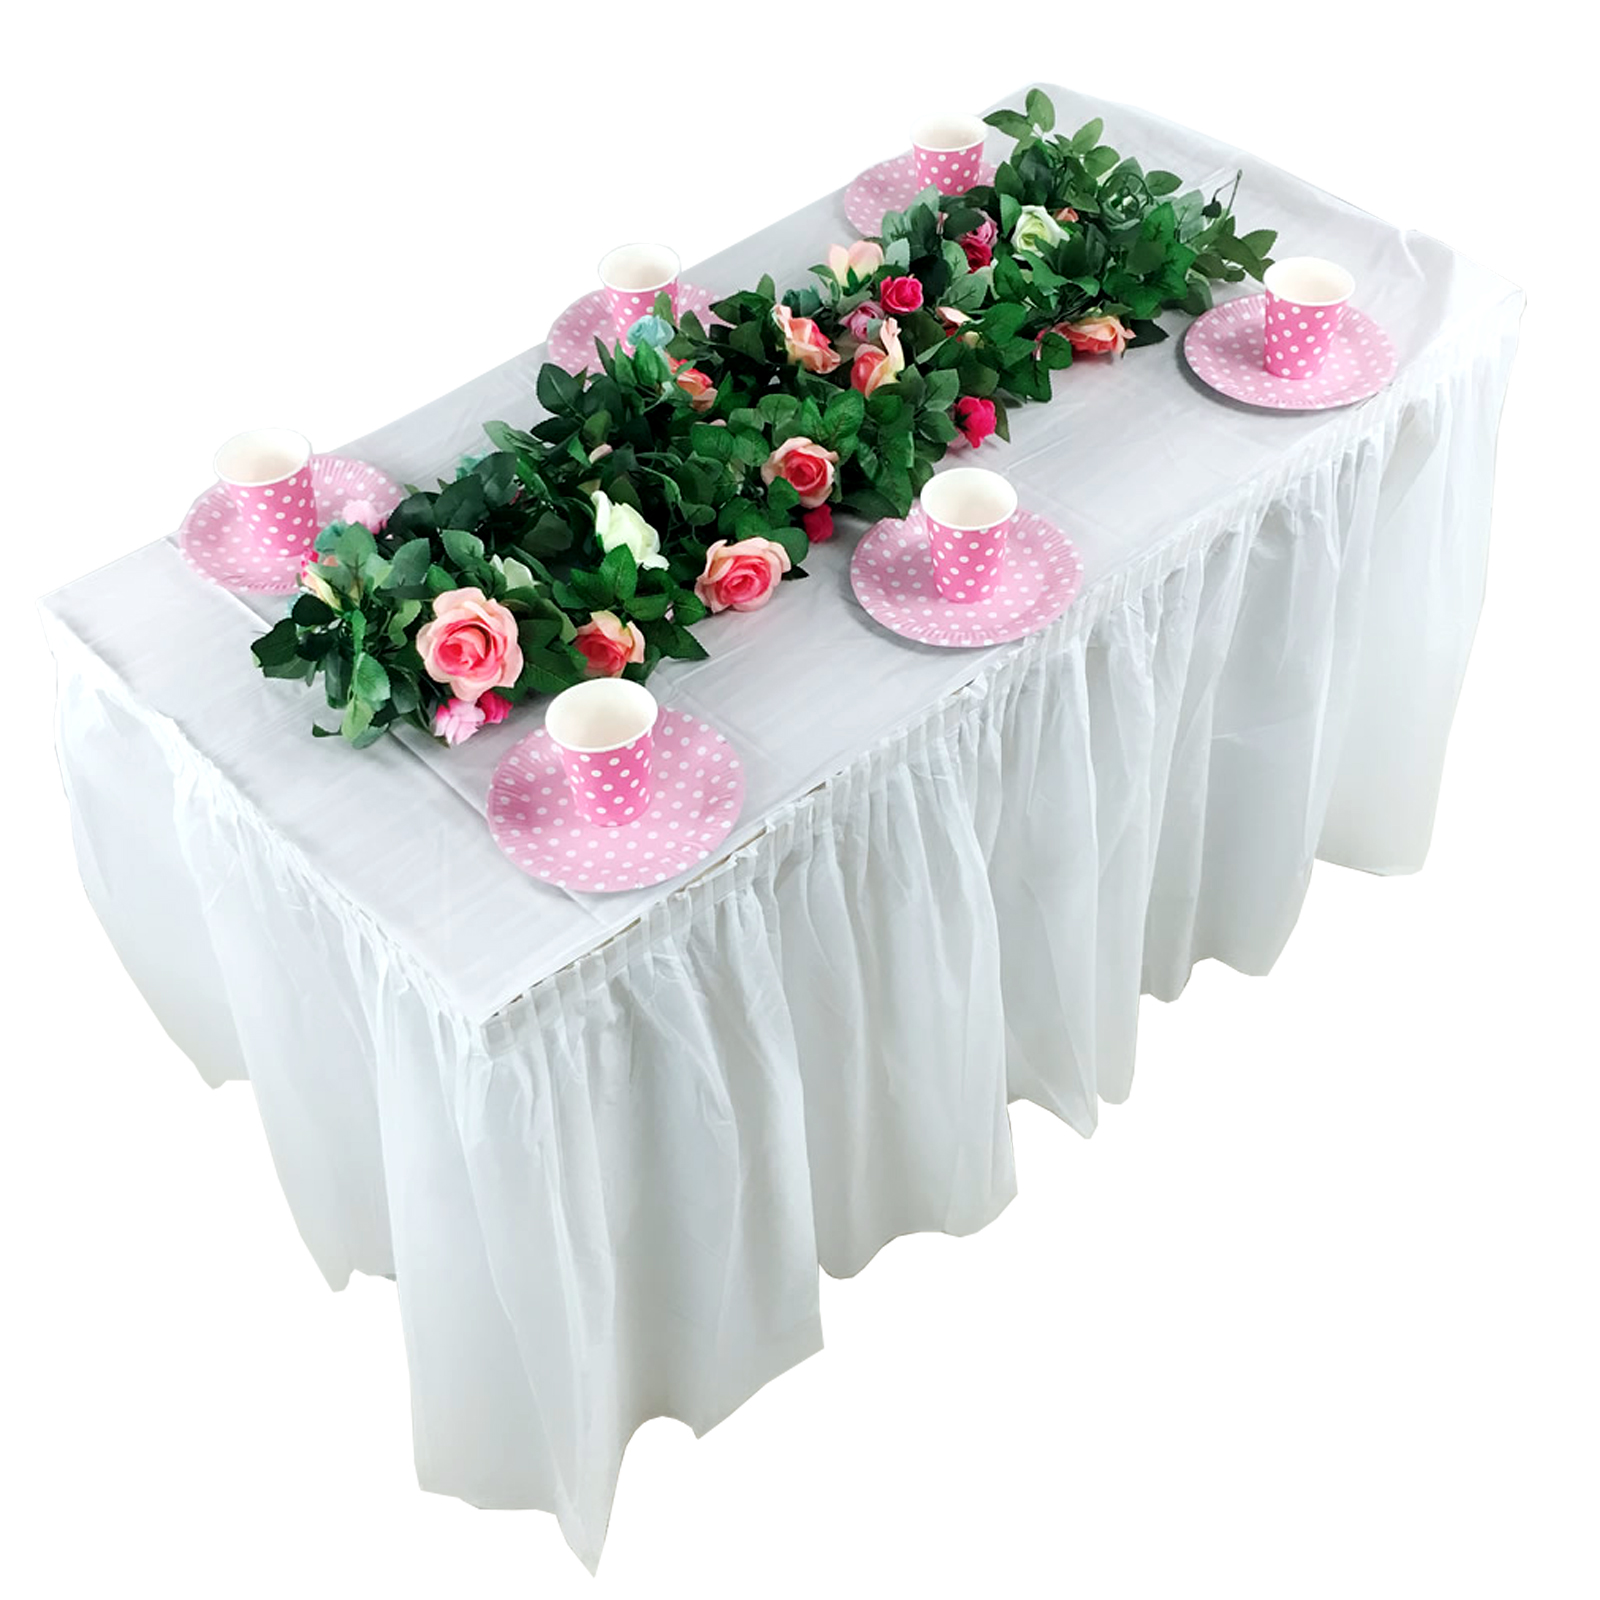 1pcs 420x70cm Birthday Party Disposable PEVA Table Skirt Plastic Table Cover For Wedding Baby Shower Home Festival Decoration